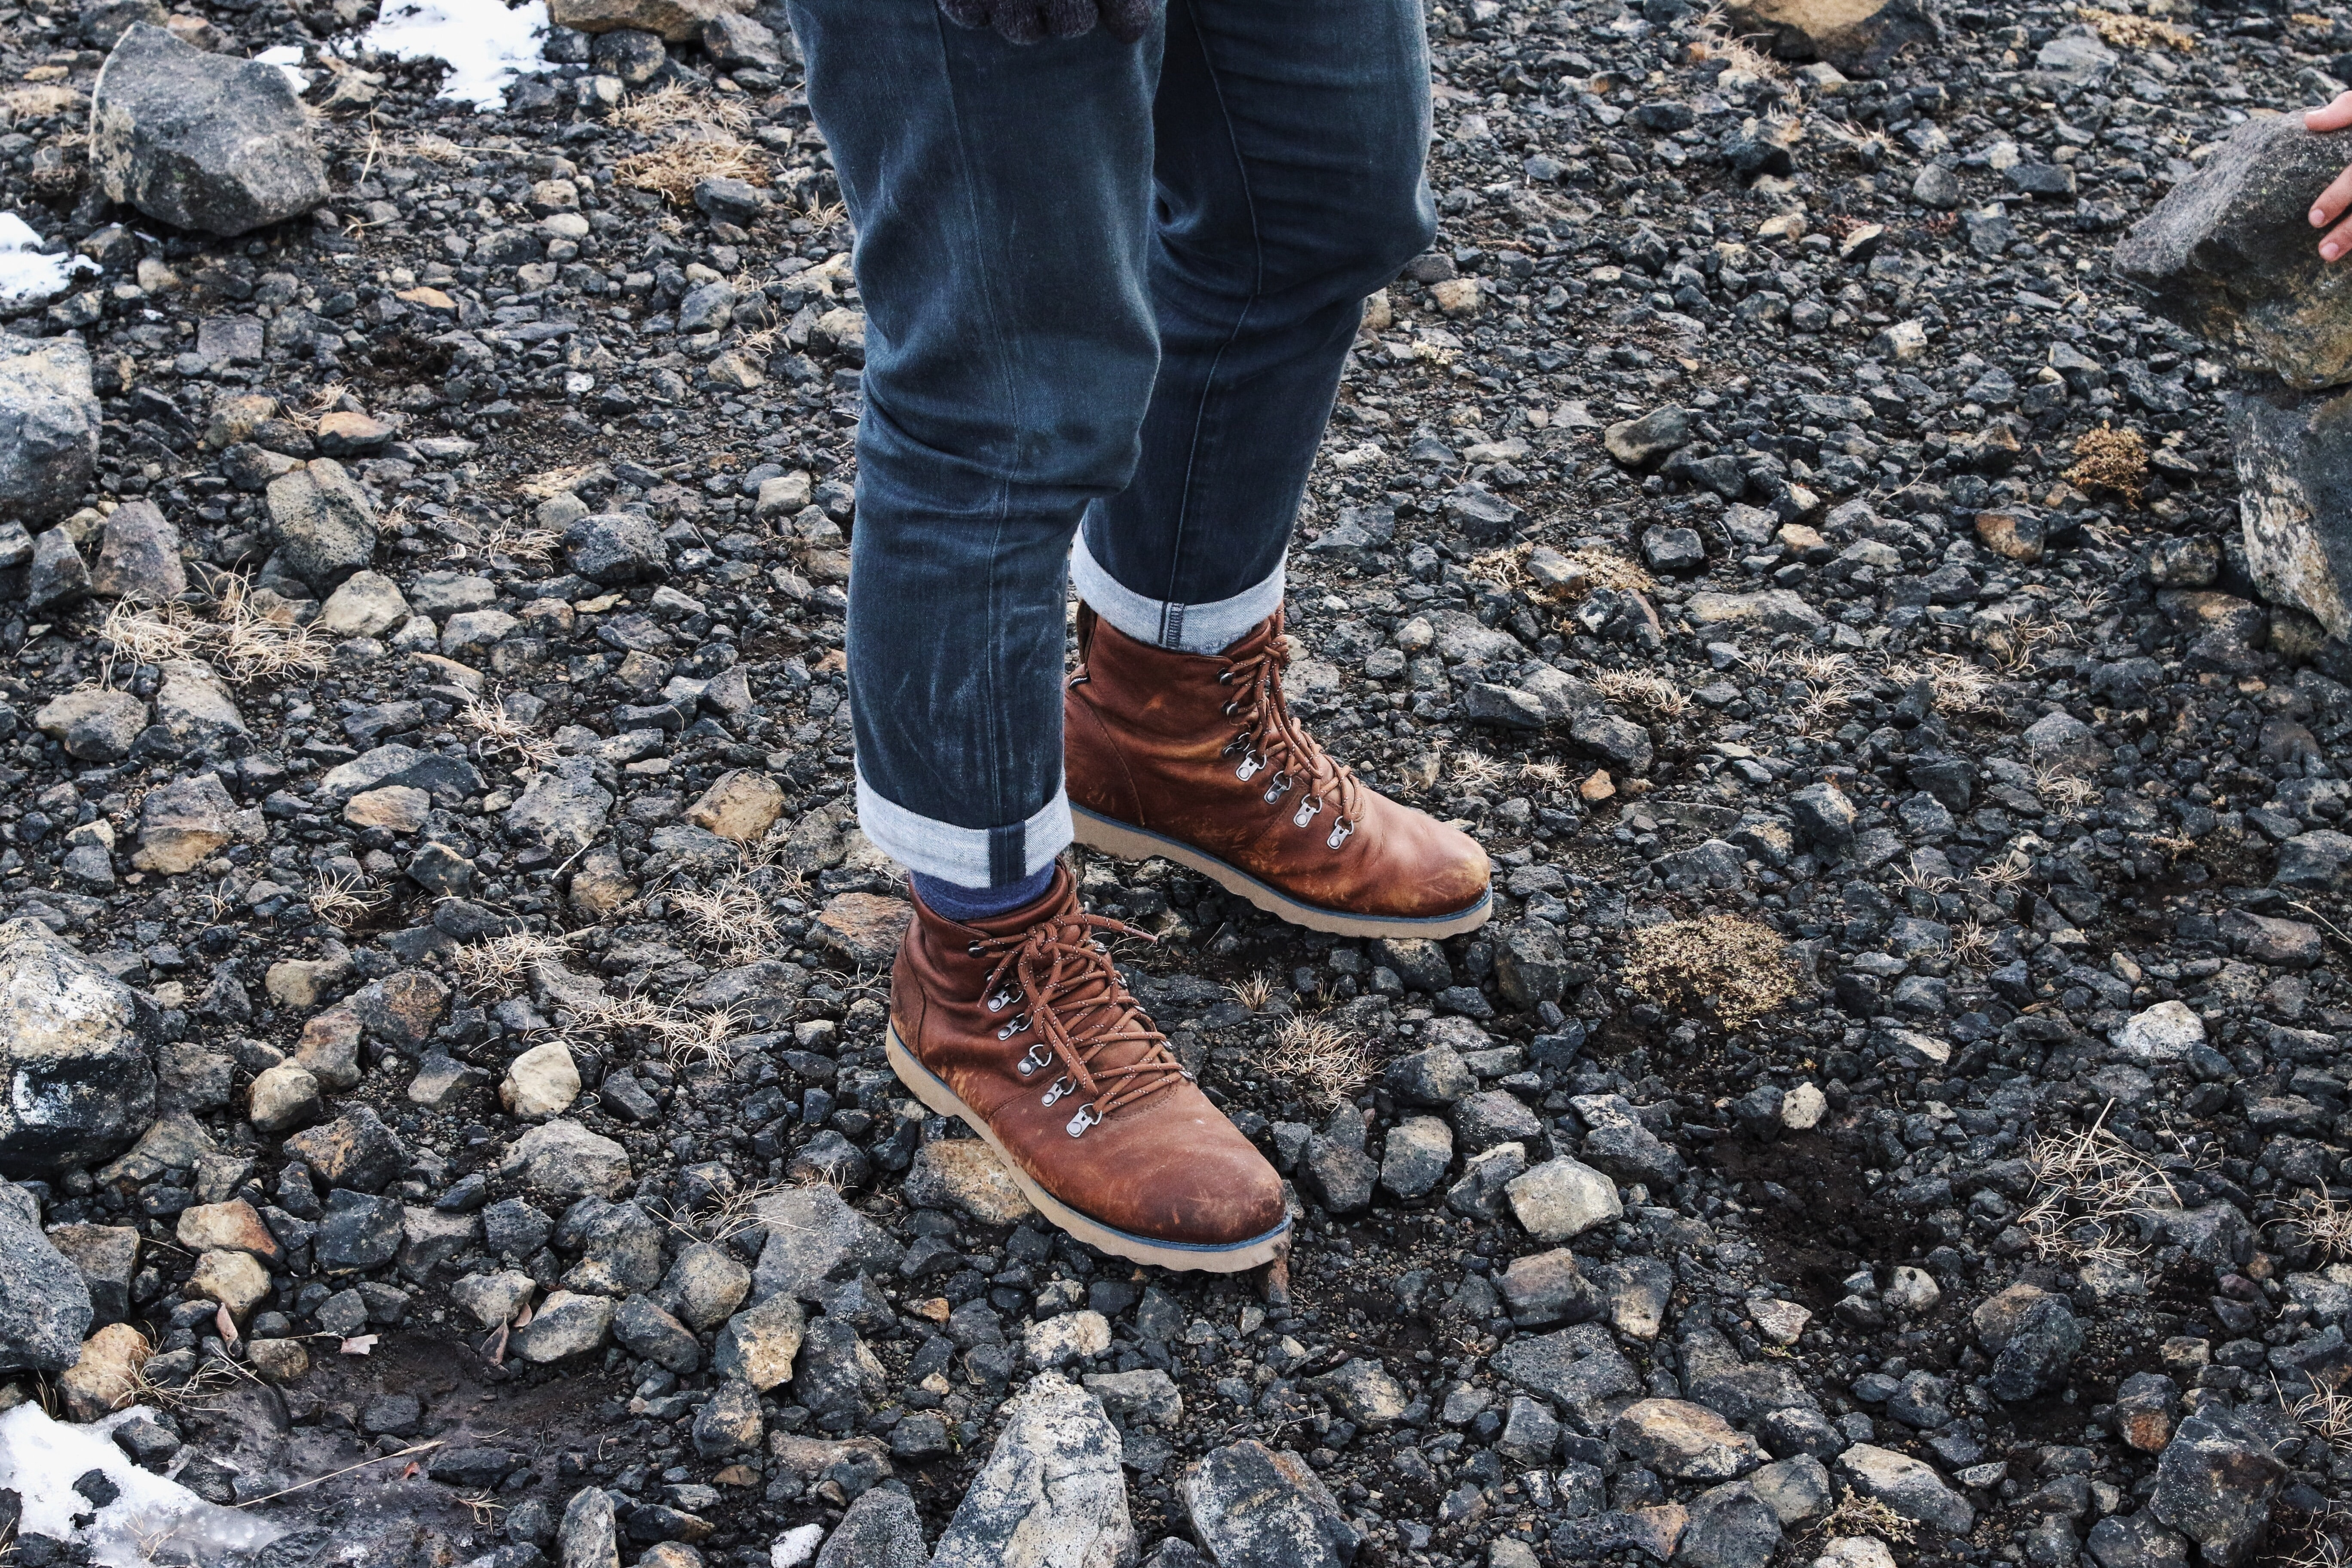 A person standing on a gravel surface wearing brown boots and blue jeans